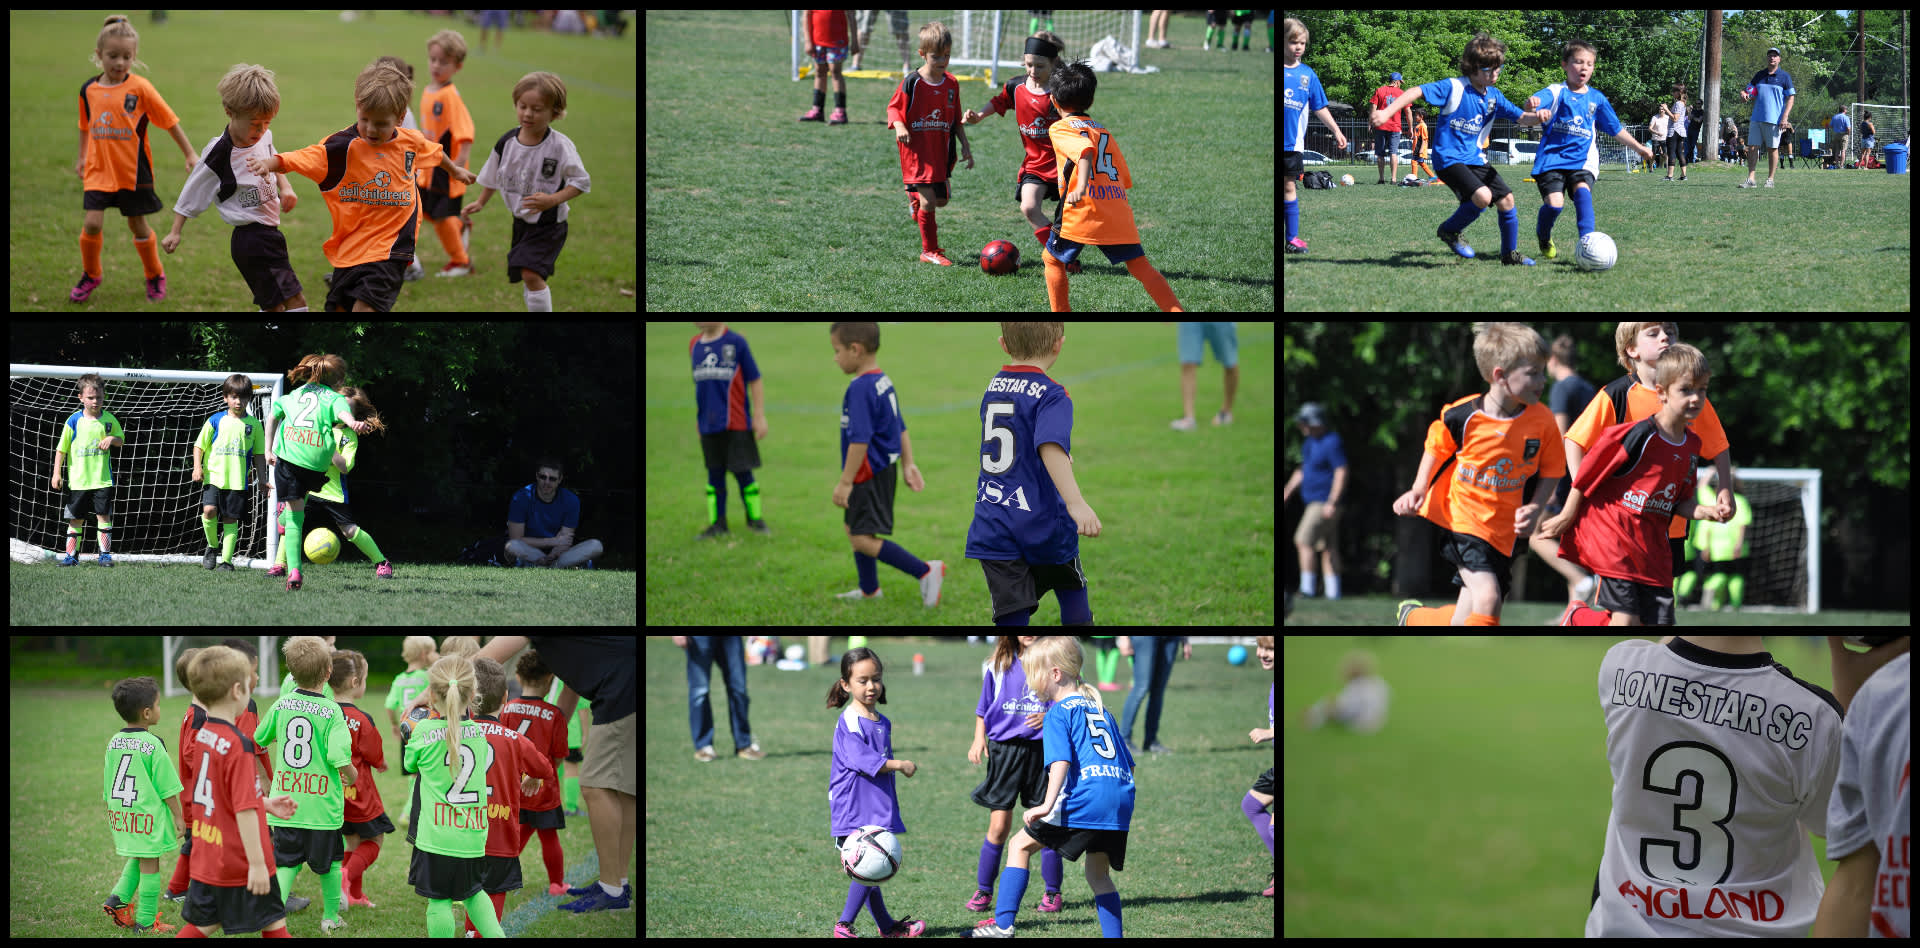 Lonestar Soccer Club of Austin, Texas